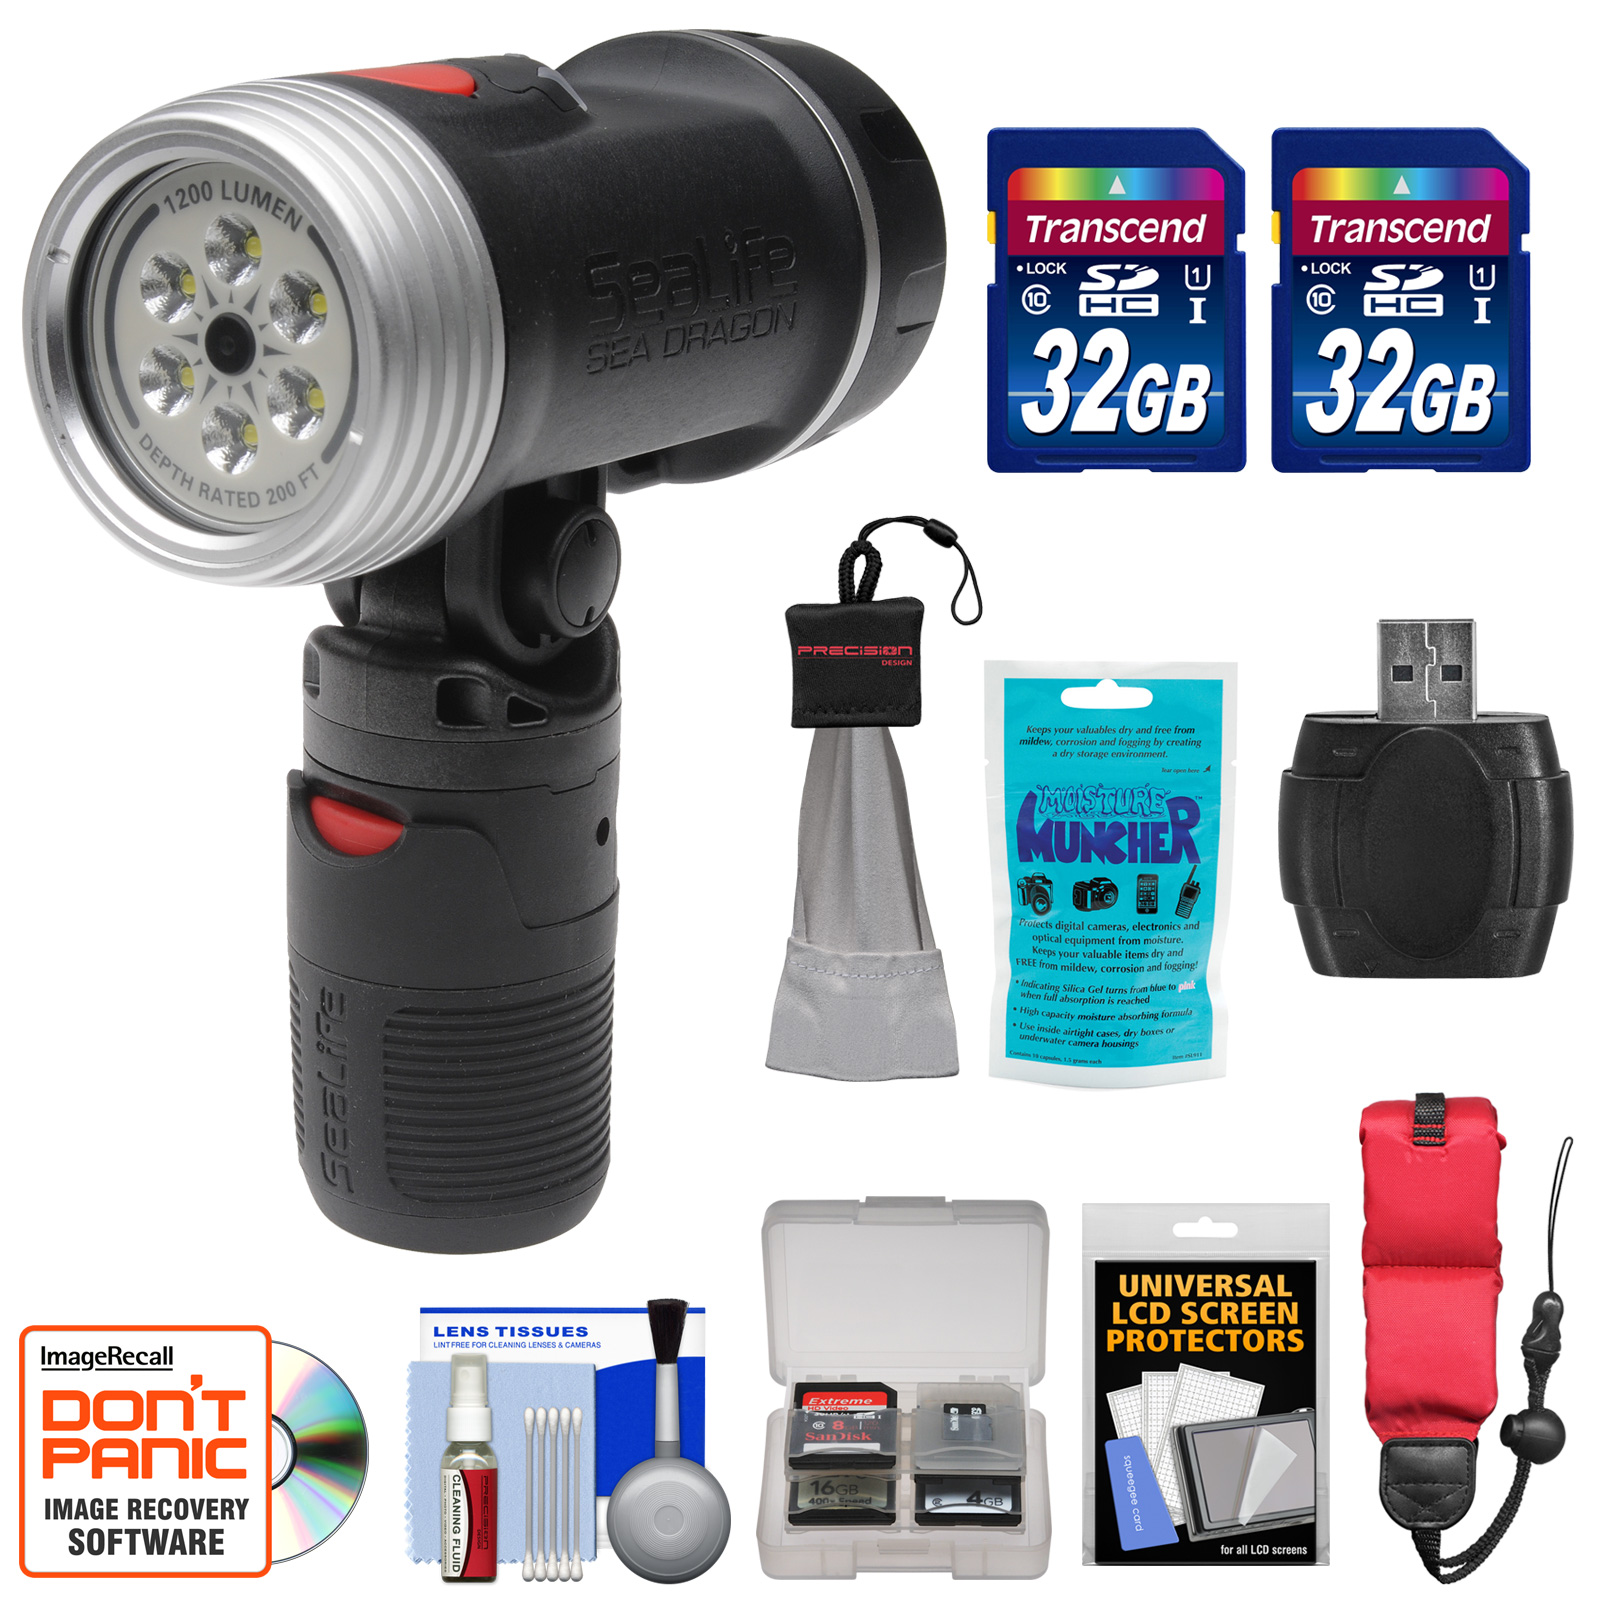 SeaLife SL985 Sea Dragon 1200 Underwater Photo/Video Dive Light with Flex-Connect Handle with (2) 32GB Cards + Floating Starp + Silica Gel + Accessory Kit